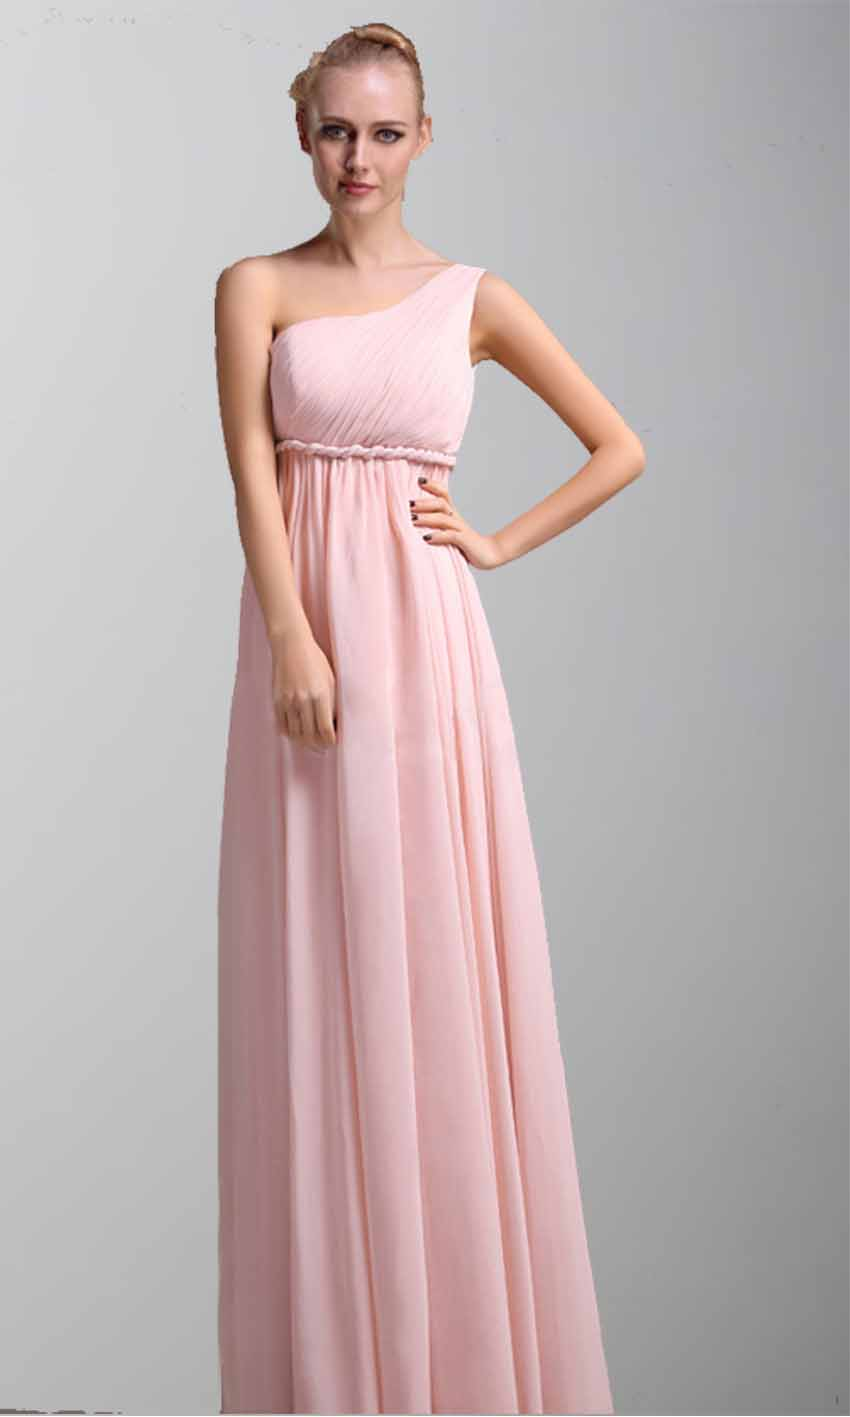 One shoulder braided belt long bridesmaid dress pregnant ksp042 one shoulder braided belt long bridesmaid dress pregnant ksp042 ksp042 8500 cheap prom dresses uk bridesmaid dresses 2014 prom evening dresses ombrellifo Choice Image